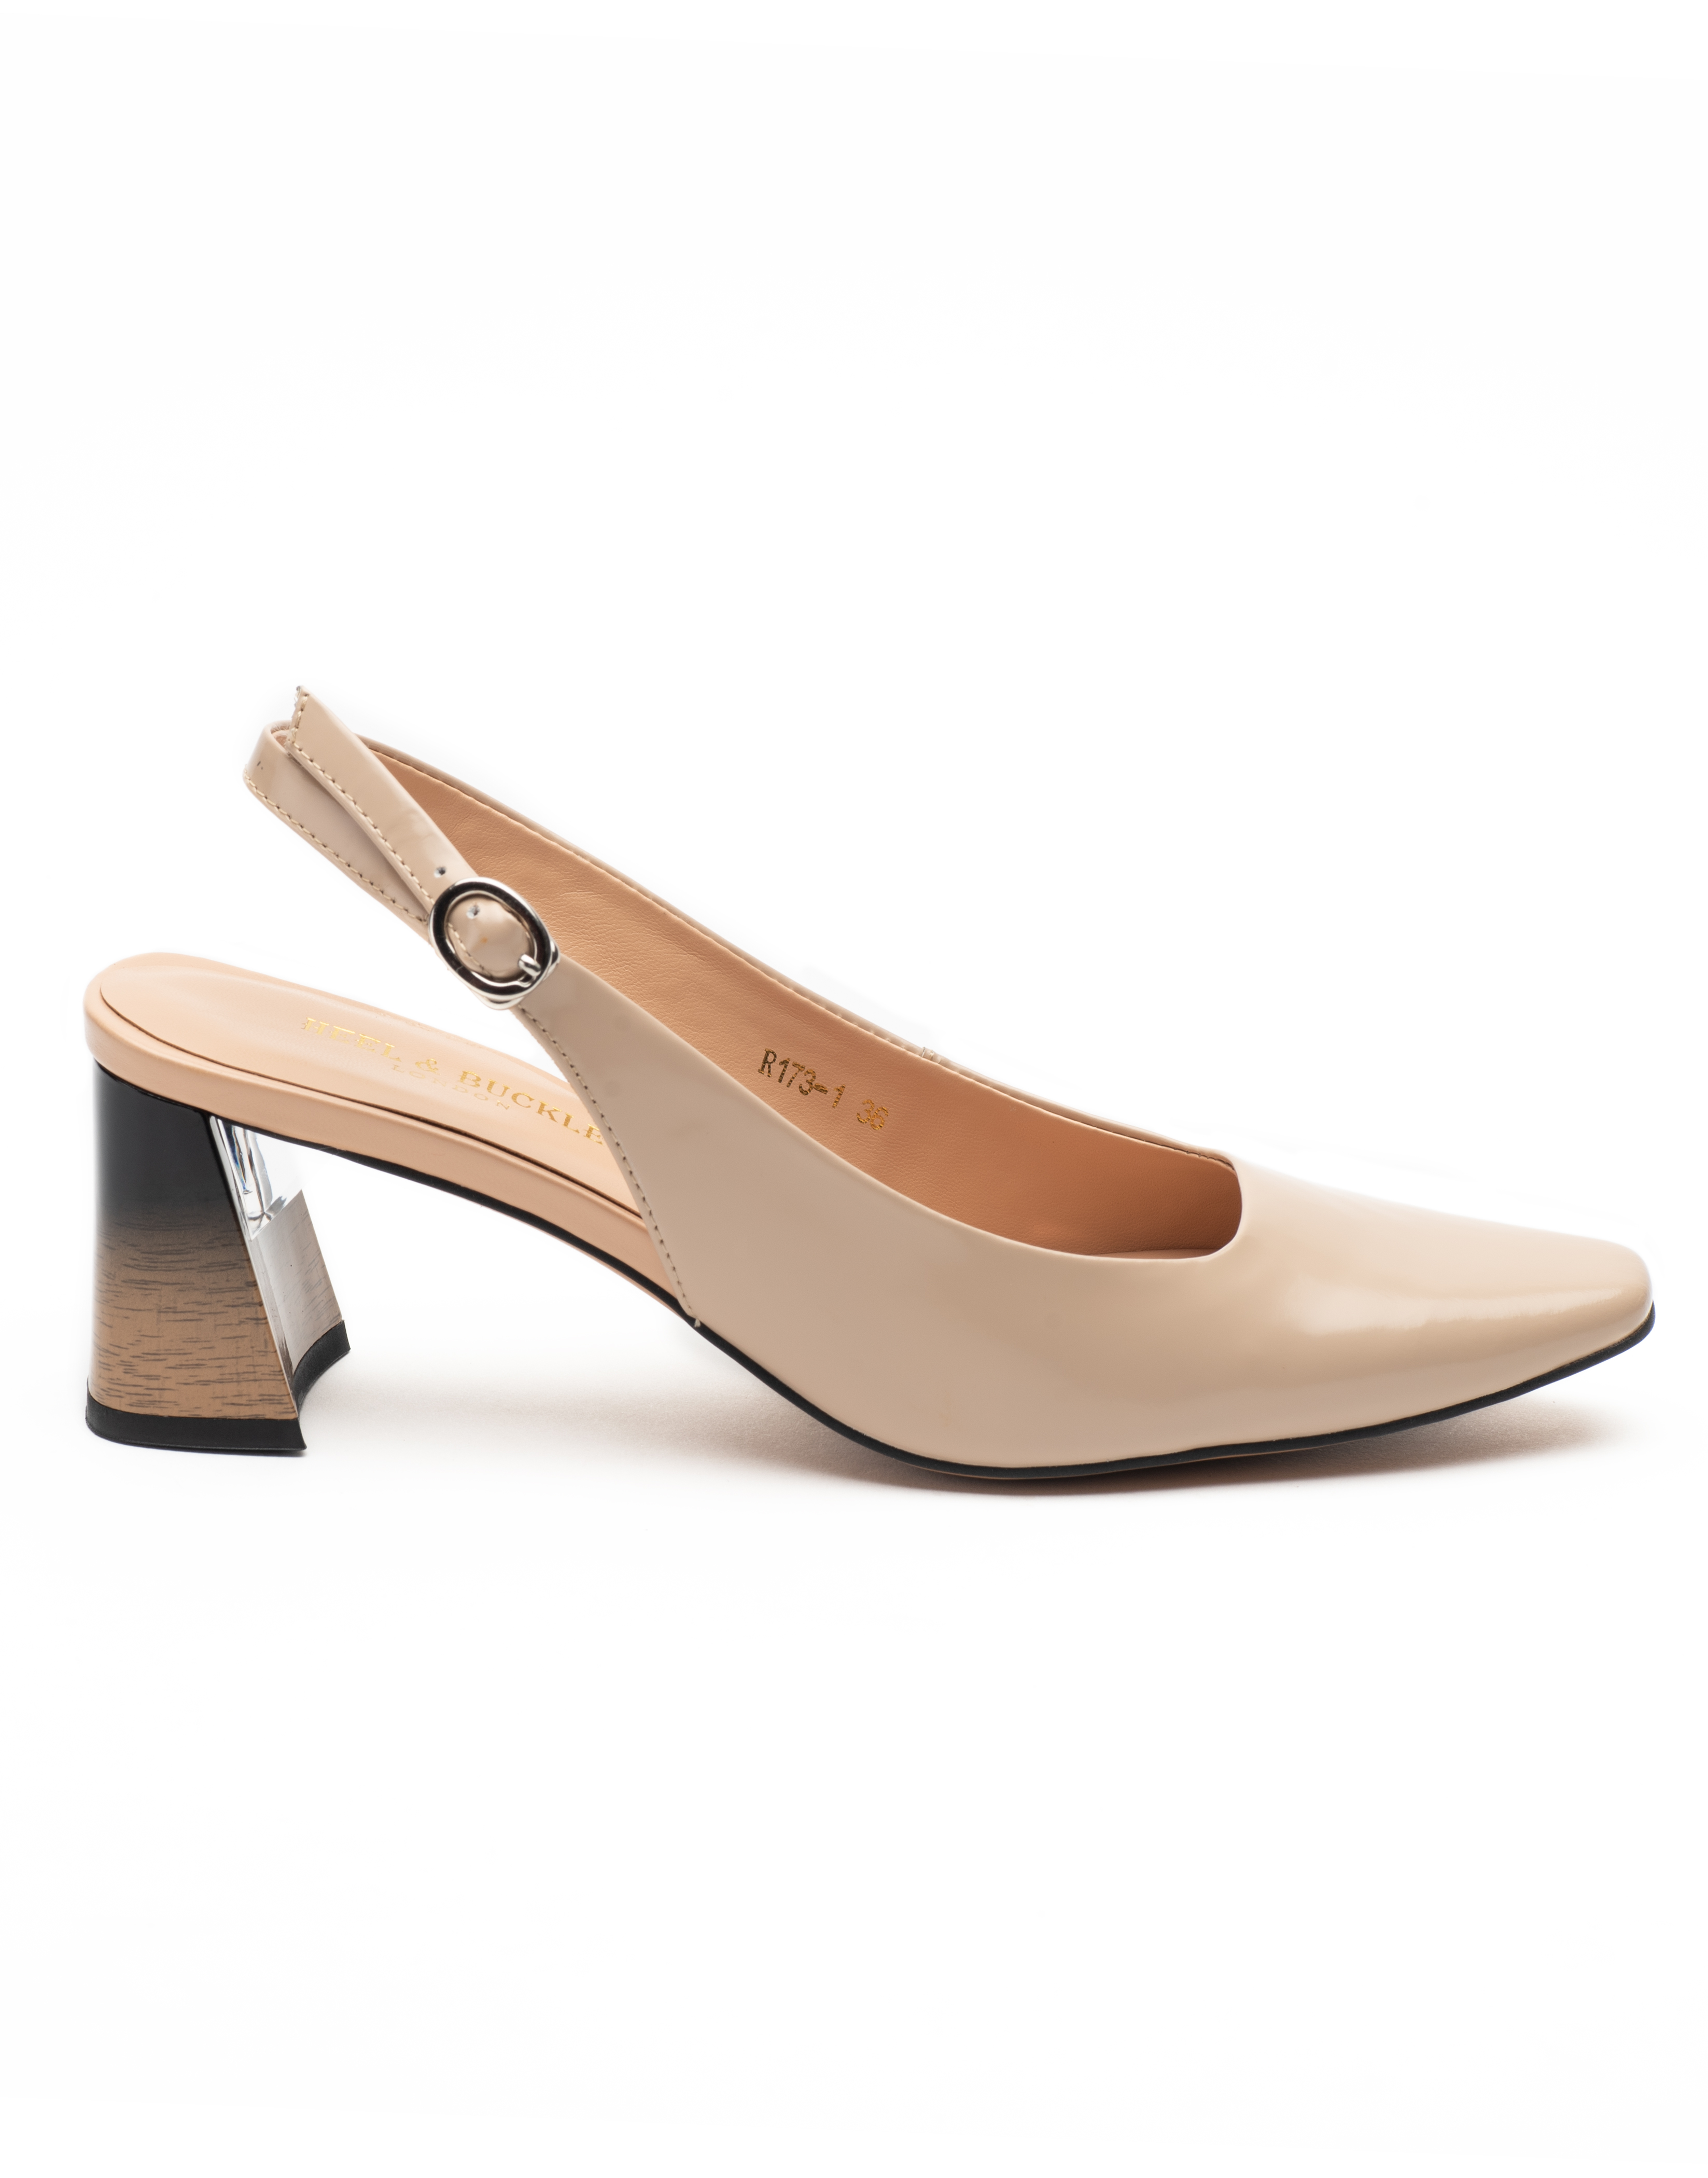 Heel _ Buckle London-Shoes-R173-1-Closed block heels-Tan-1